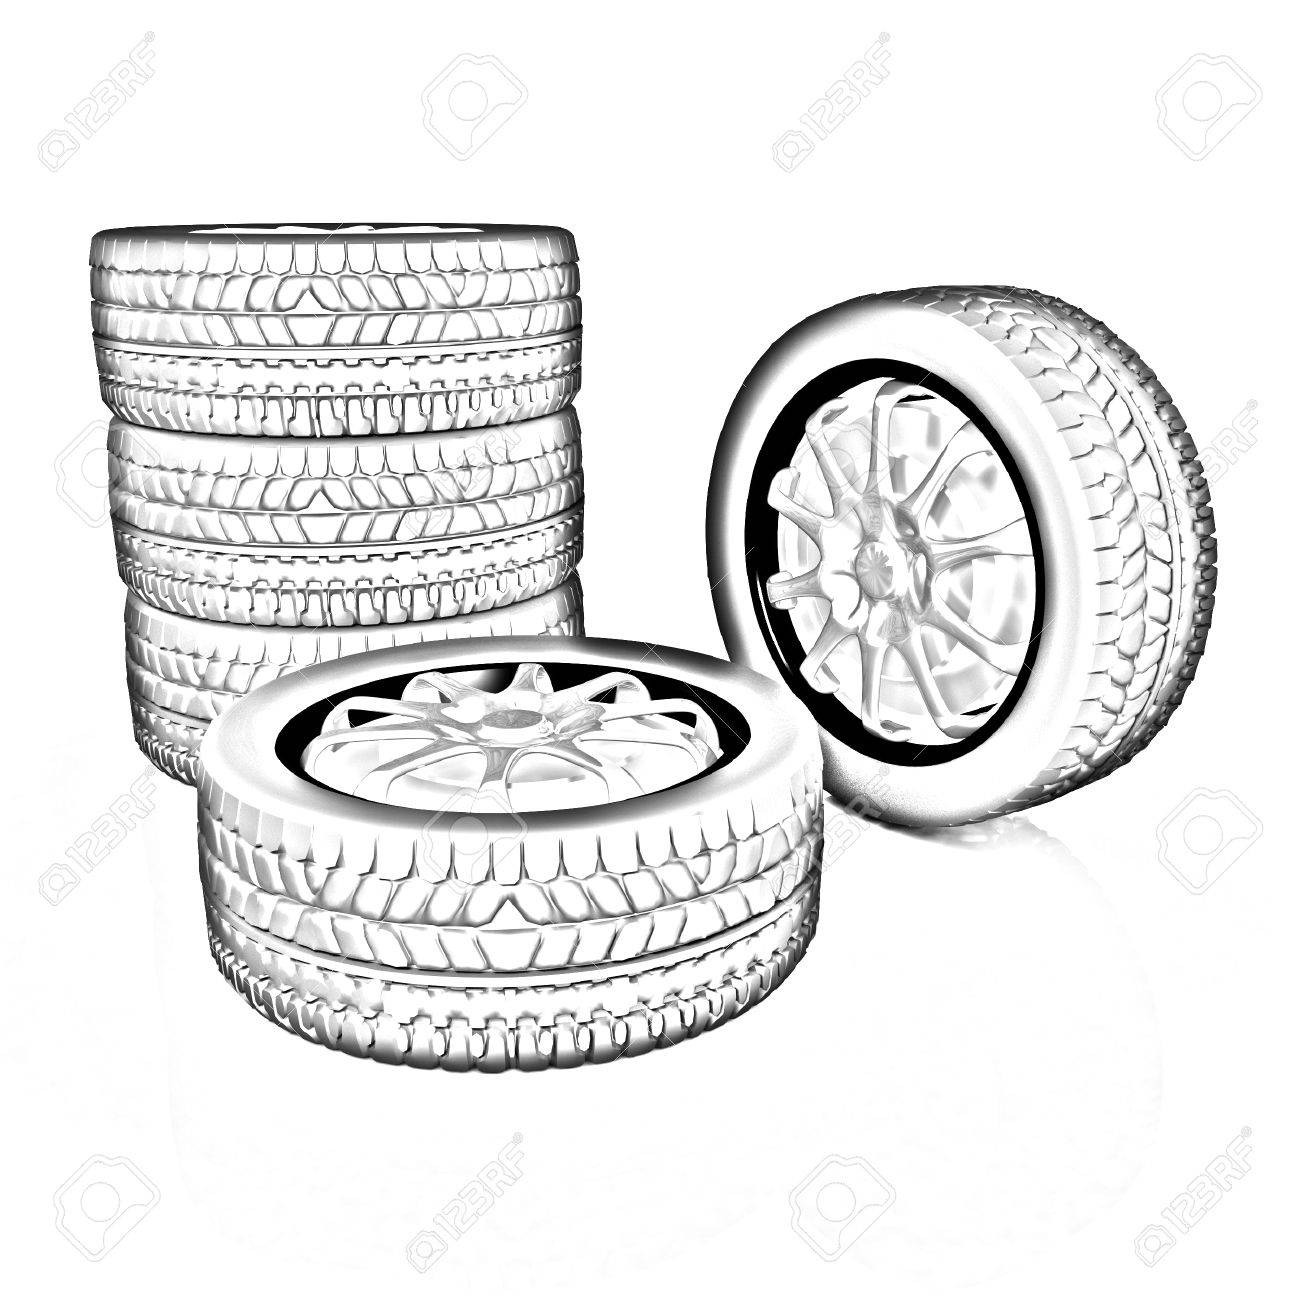 Car Wheel Illustration On White Background Pencil Drawing Stock Photo Picture And Royalty Free Image Image 32047969